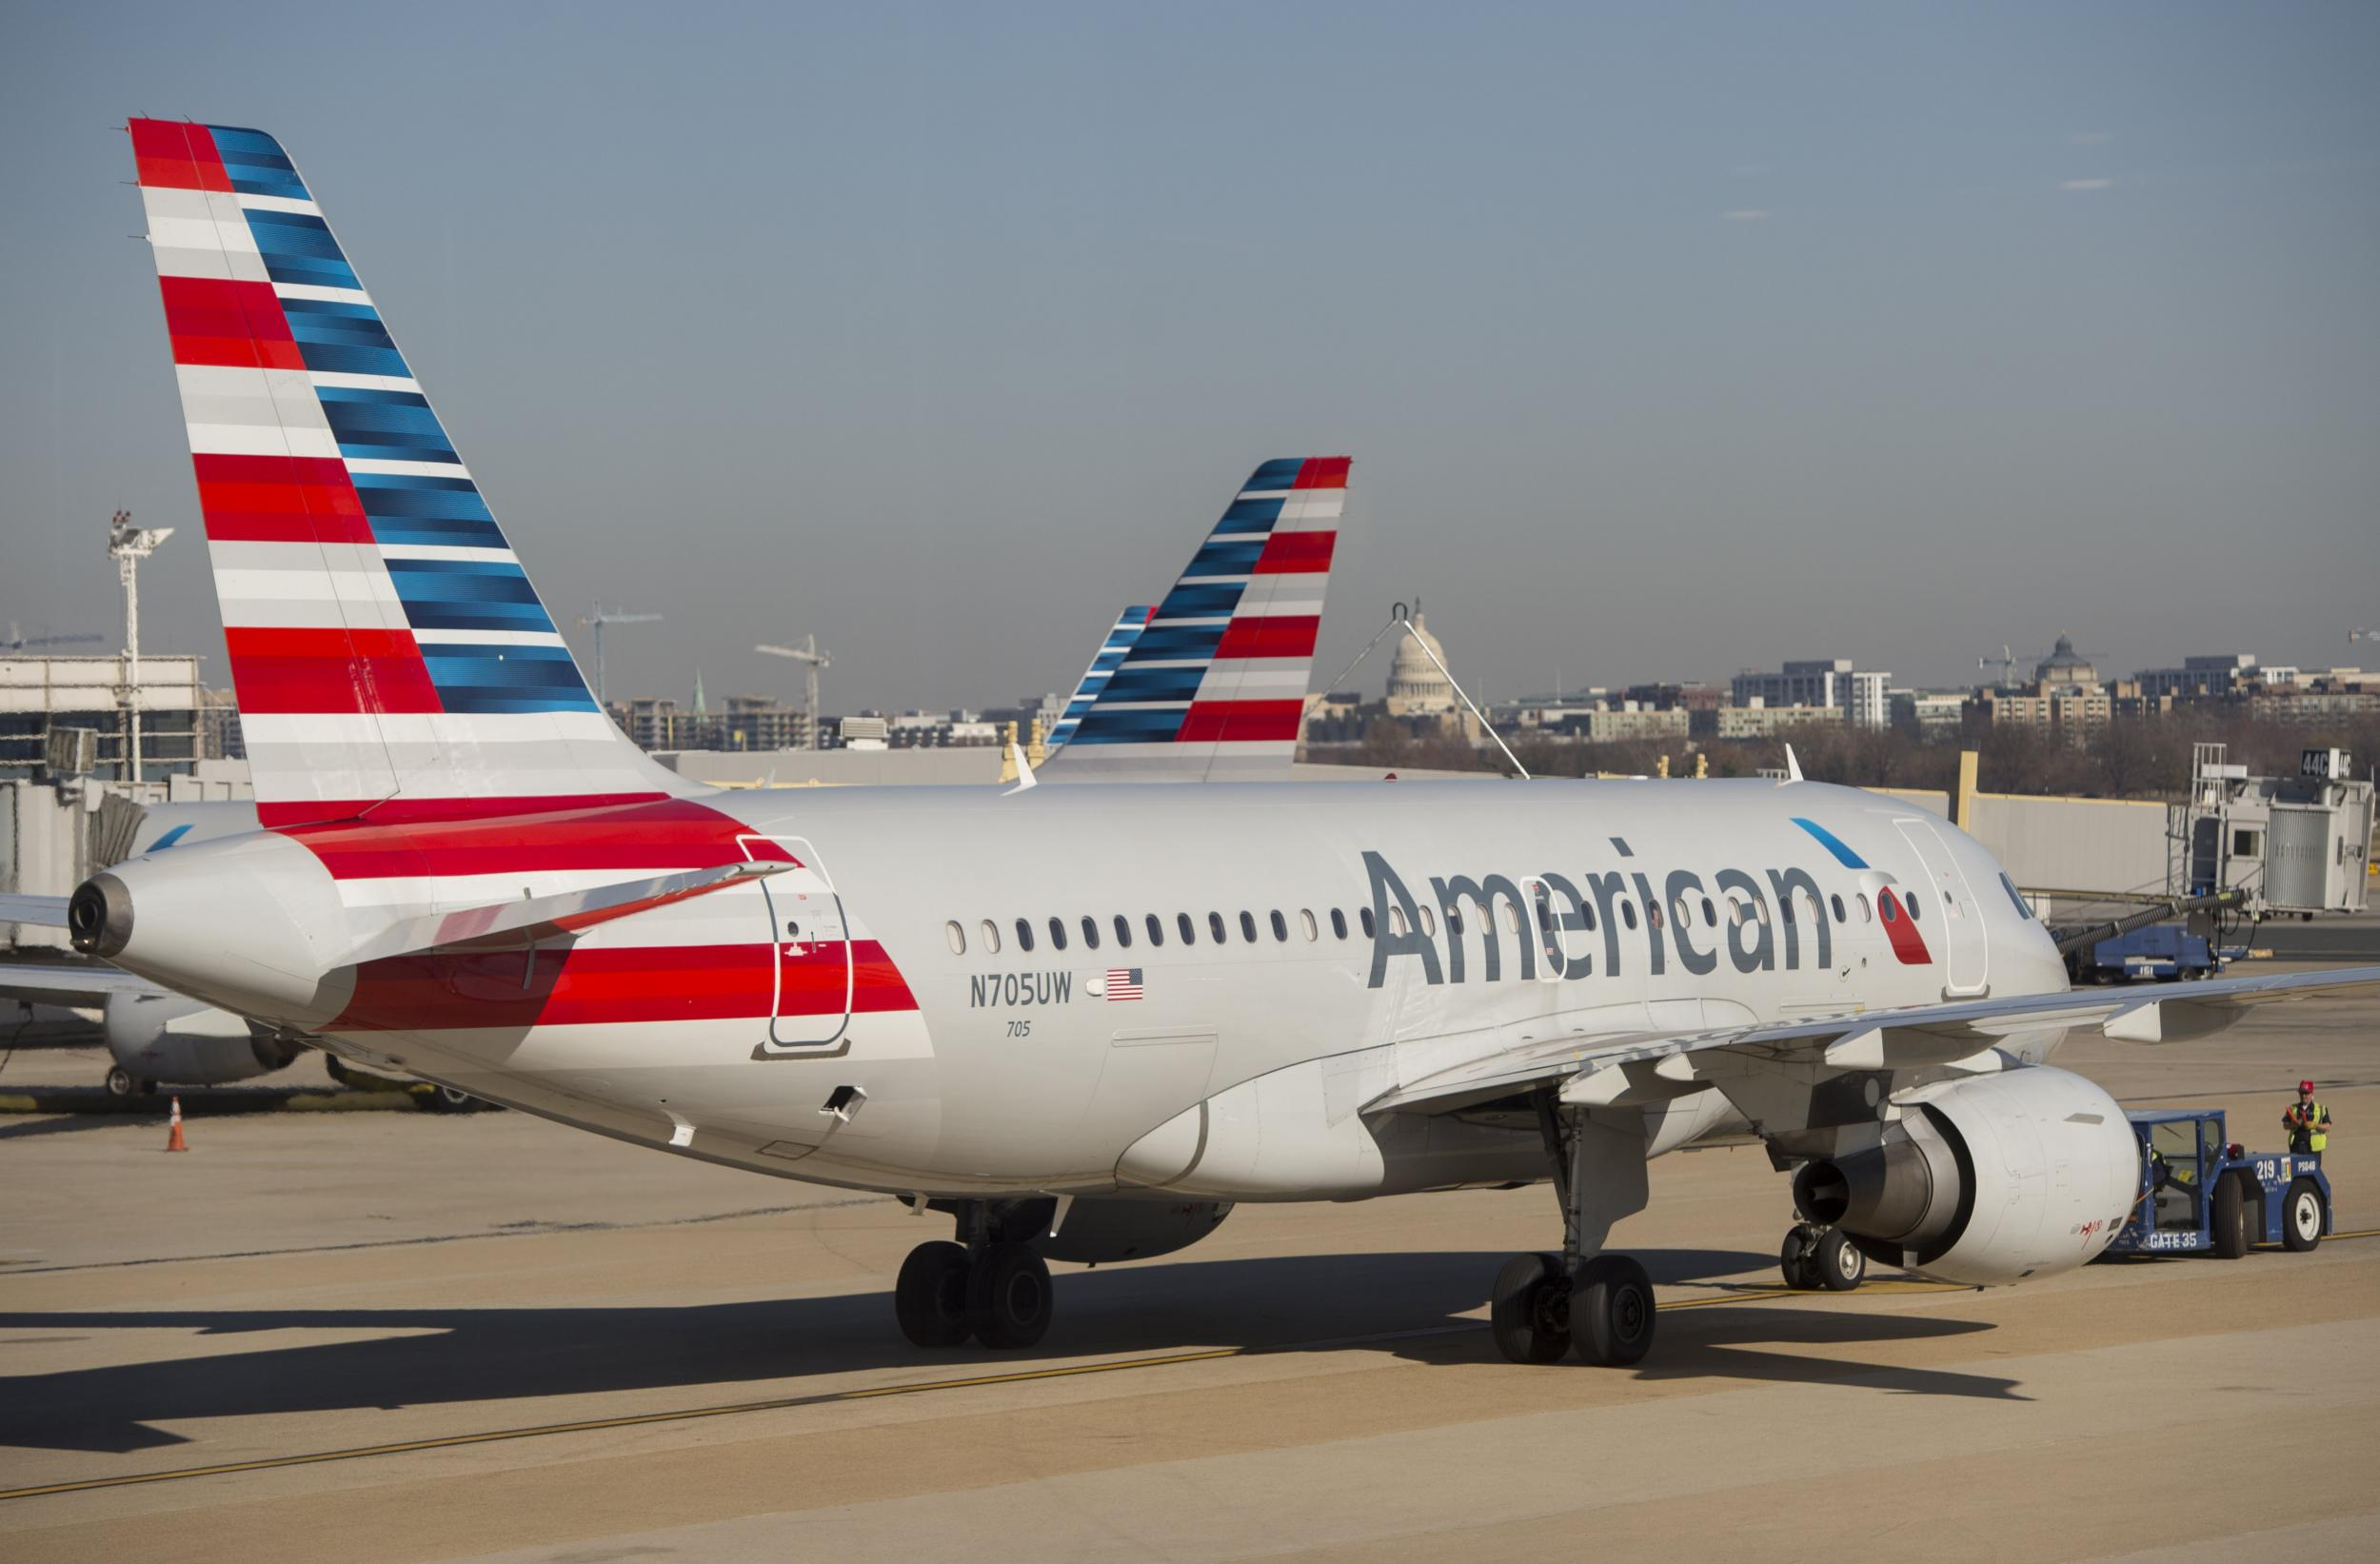 American Airlines Pilot Arrested On Suspicion Of Trying To